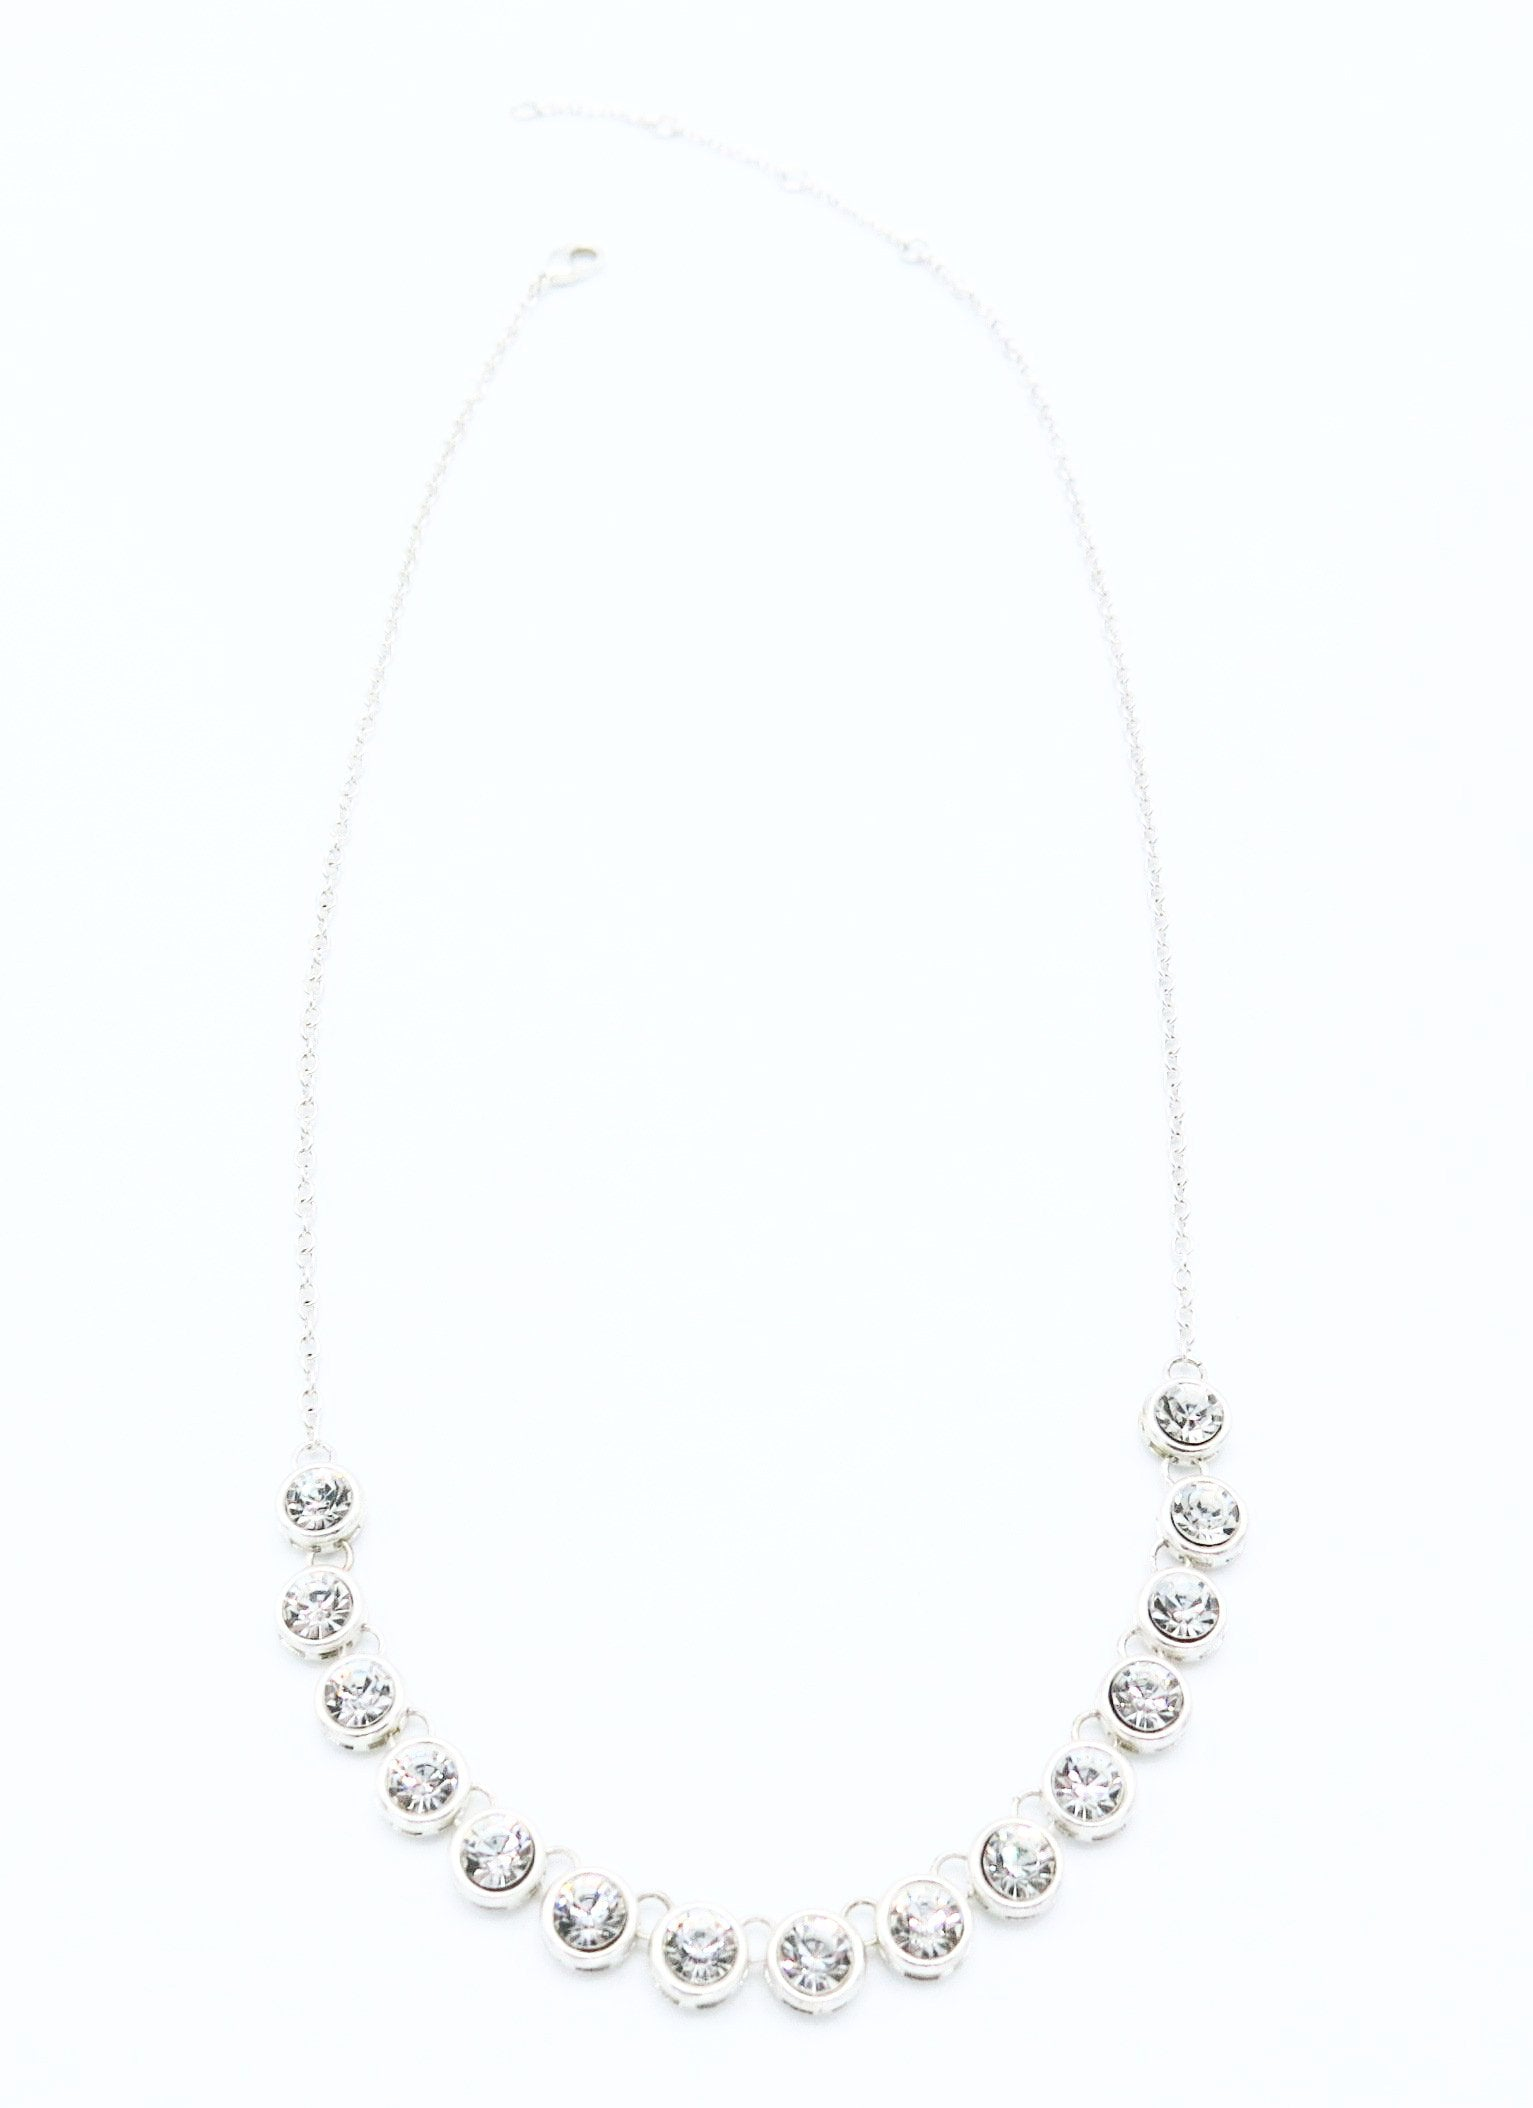 Medium Length Necklace with Crystal Pendants in Silver